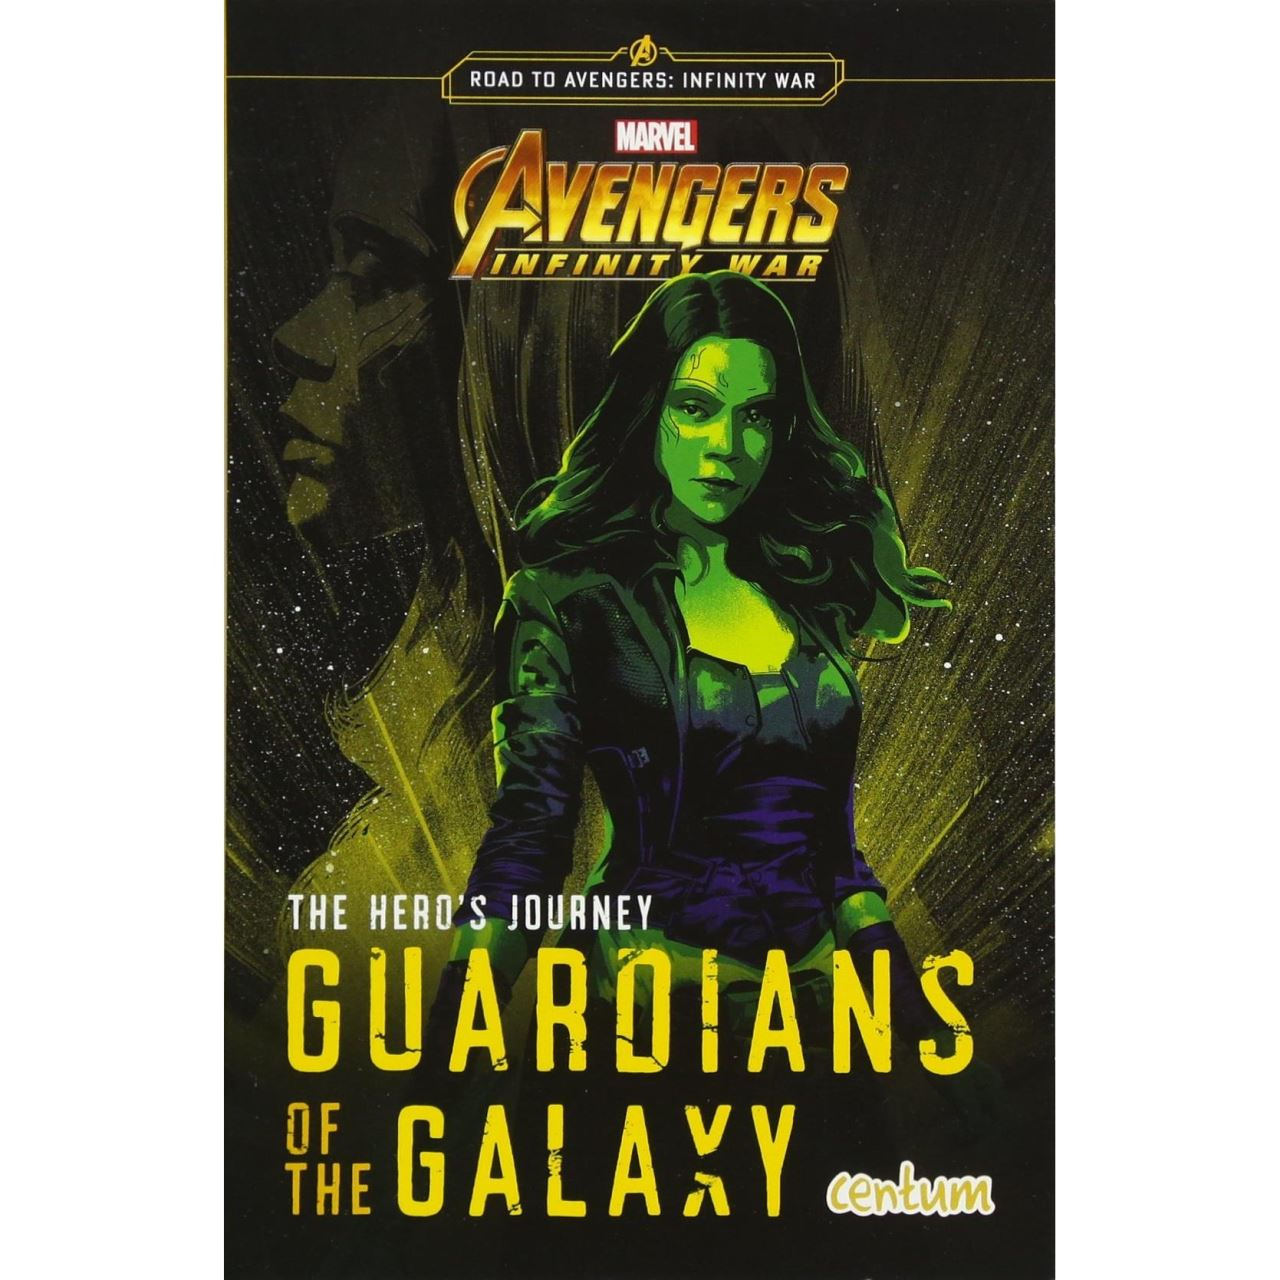 The Hero's Journey: Guardians Of The Galaxy imagine